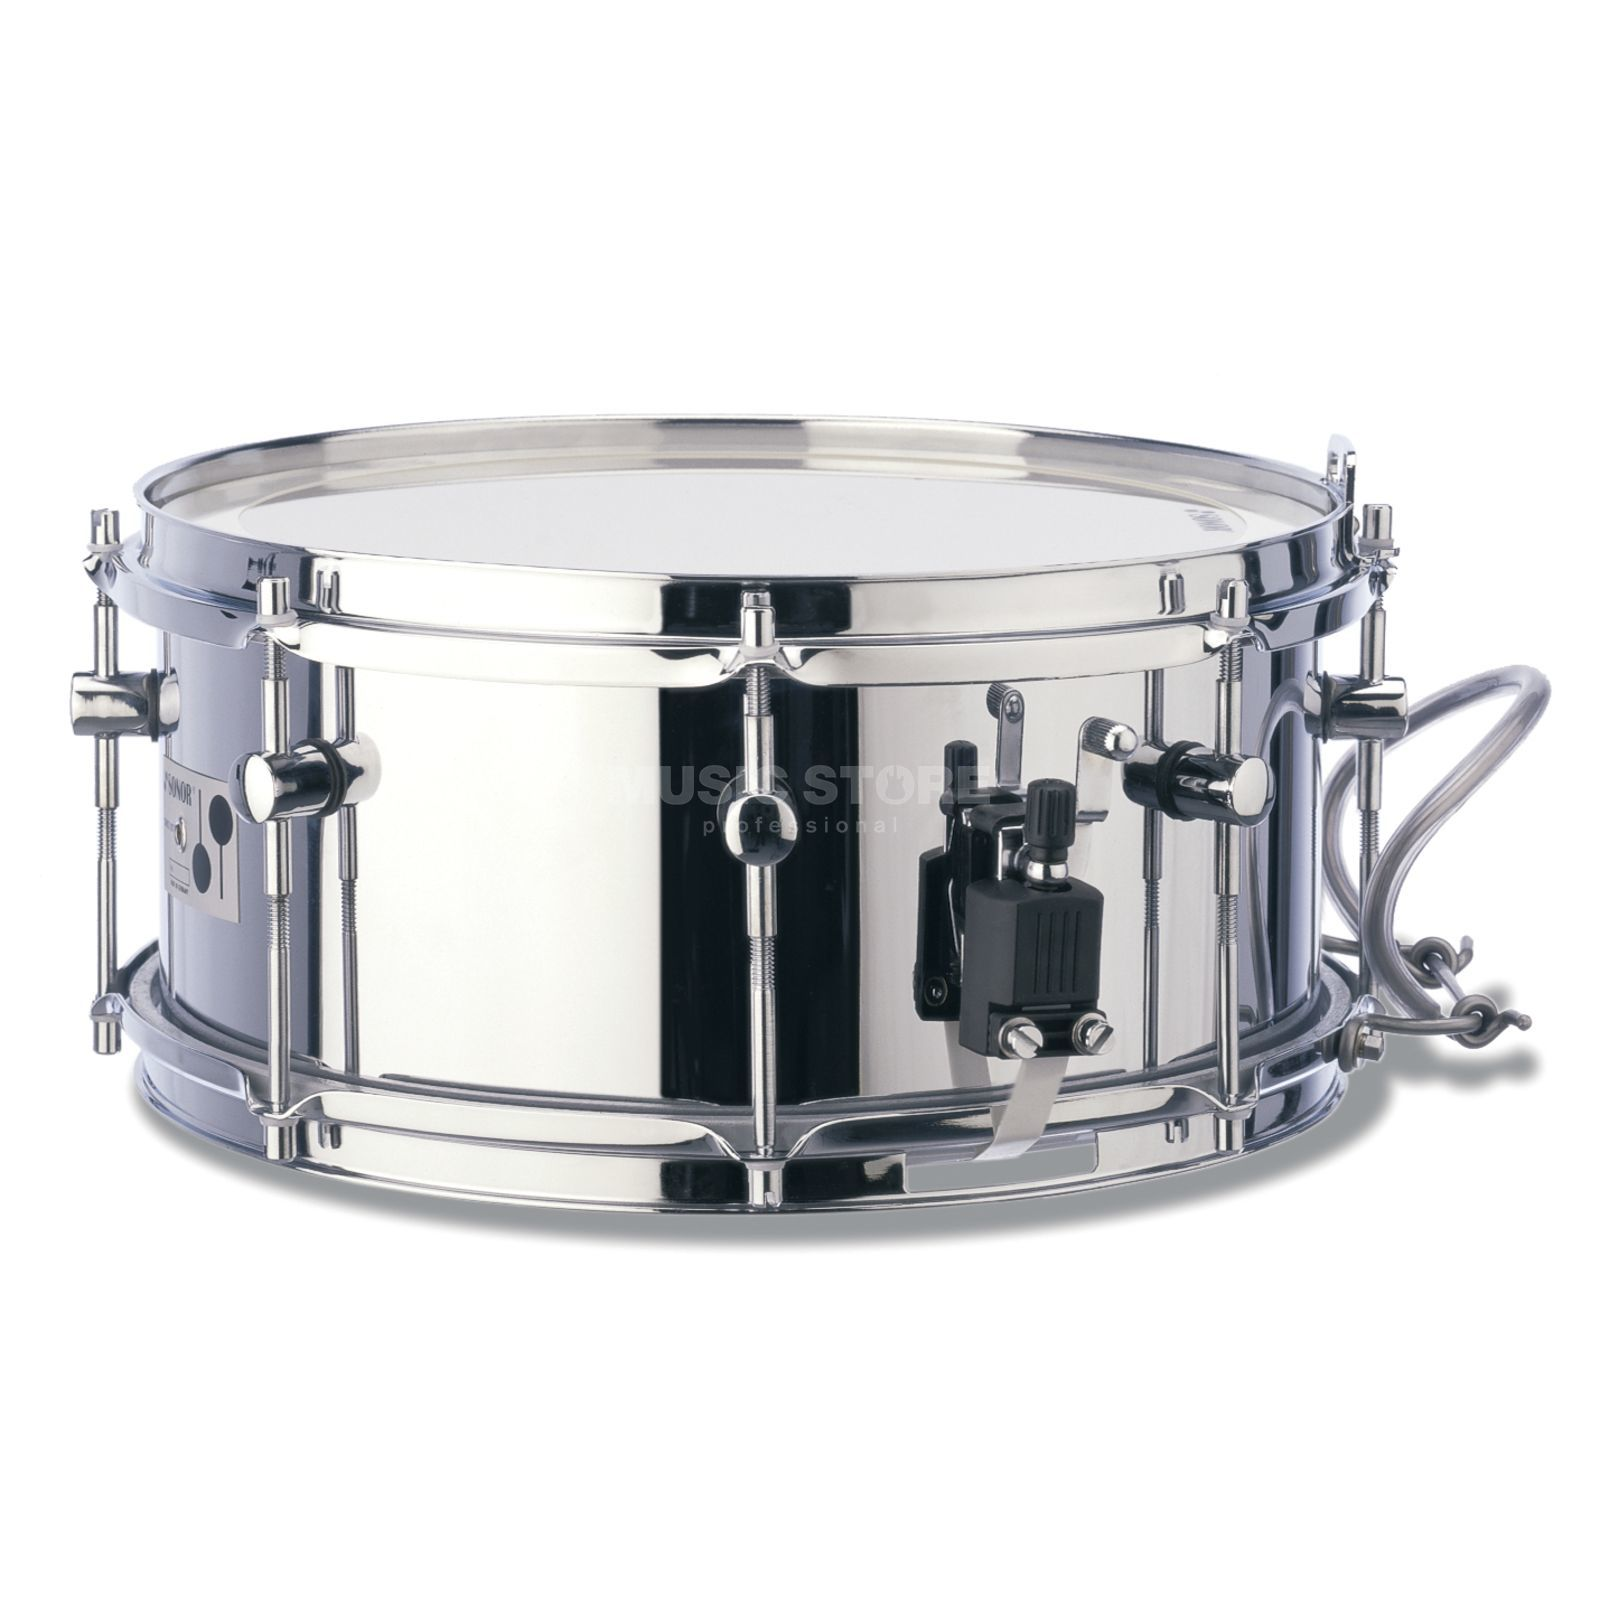 "Sonor Marching Snare MB455M, 14""x5,5"", B-Line Series, Steel Zdjęcie produktu"